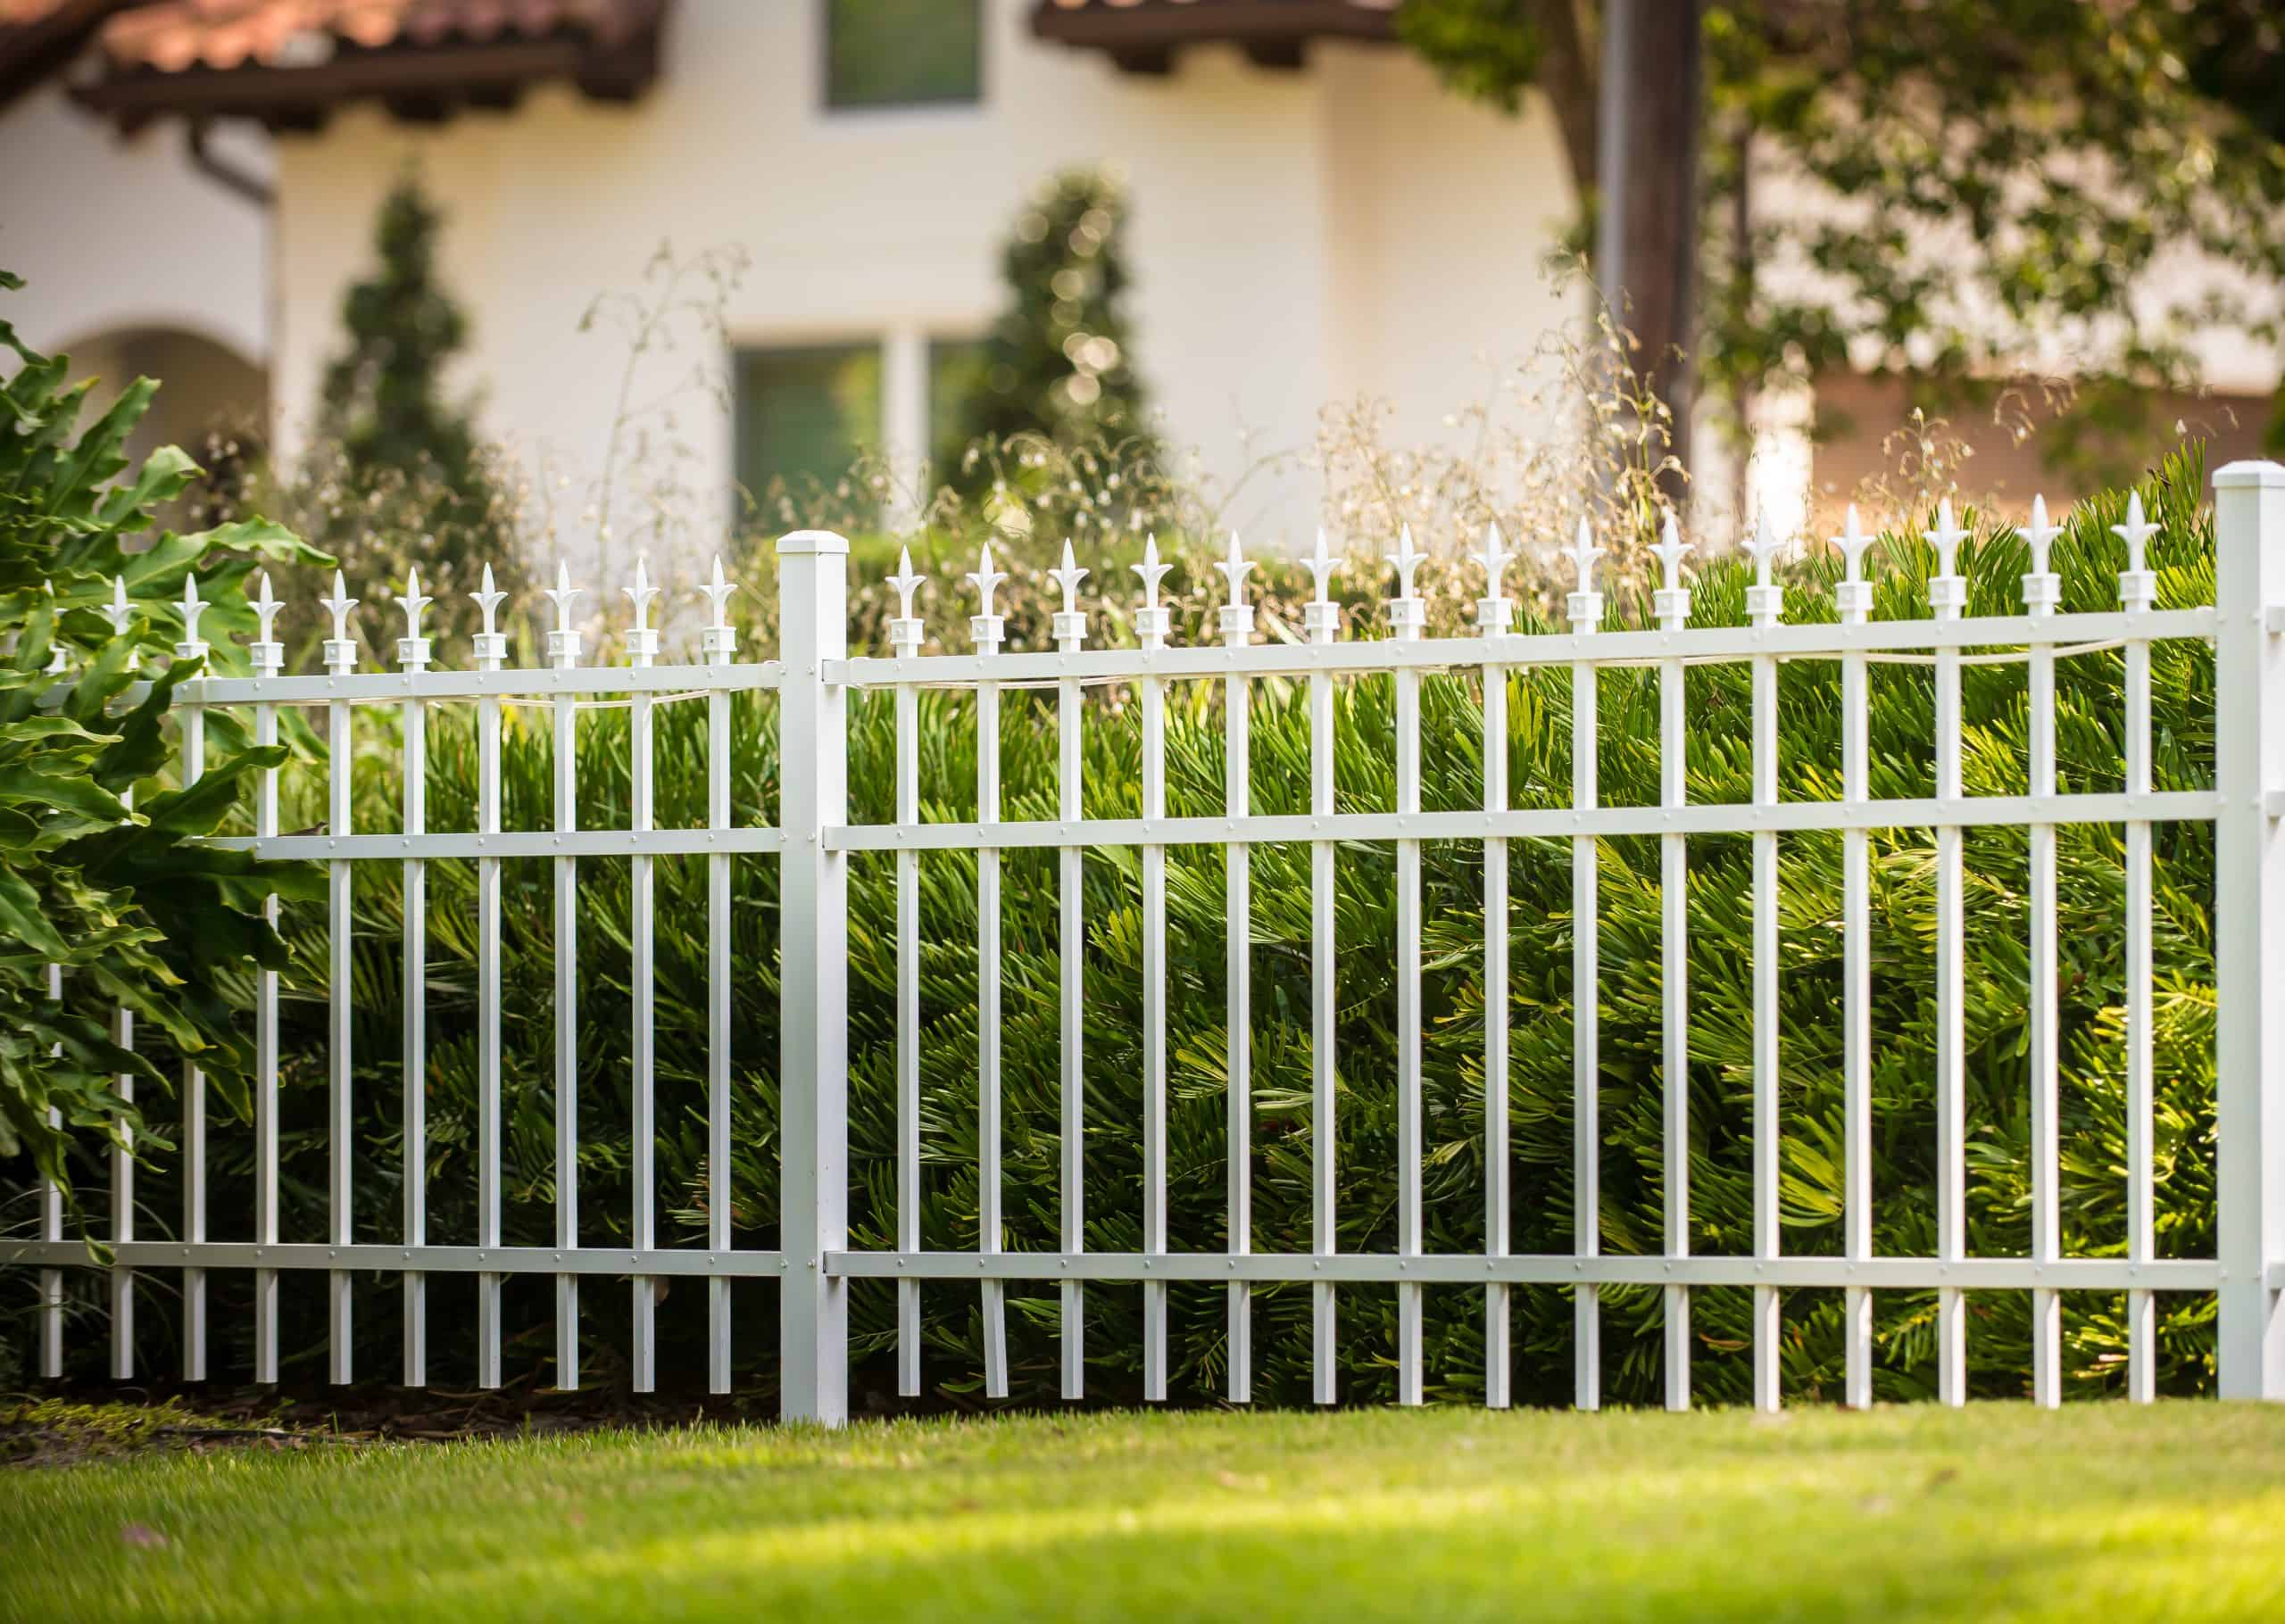 https://www.superiorfenceandrail.com/wp-content/uploads/2021/01/best-fence-company-scaled.jpg